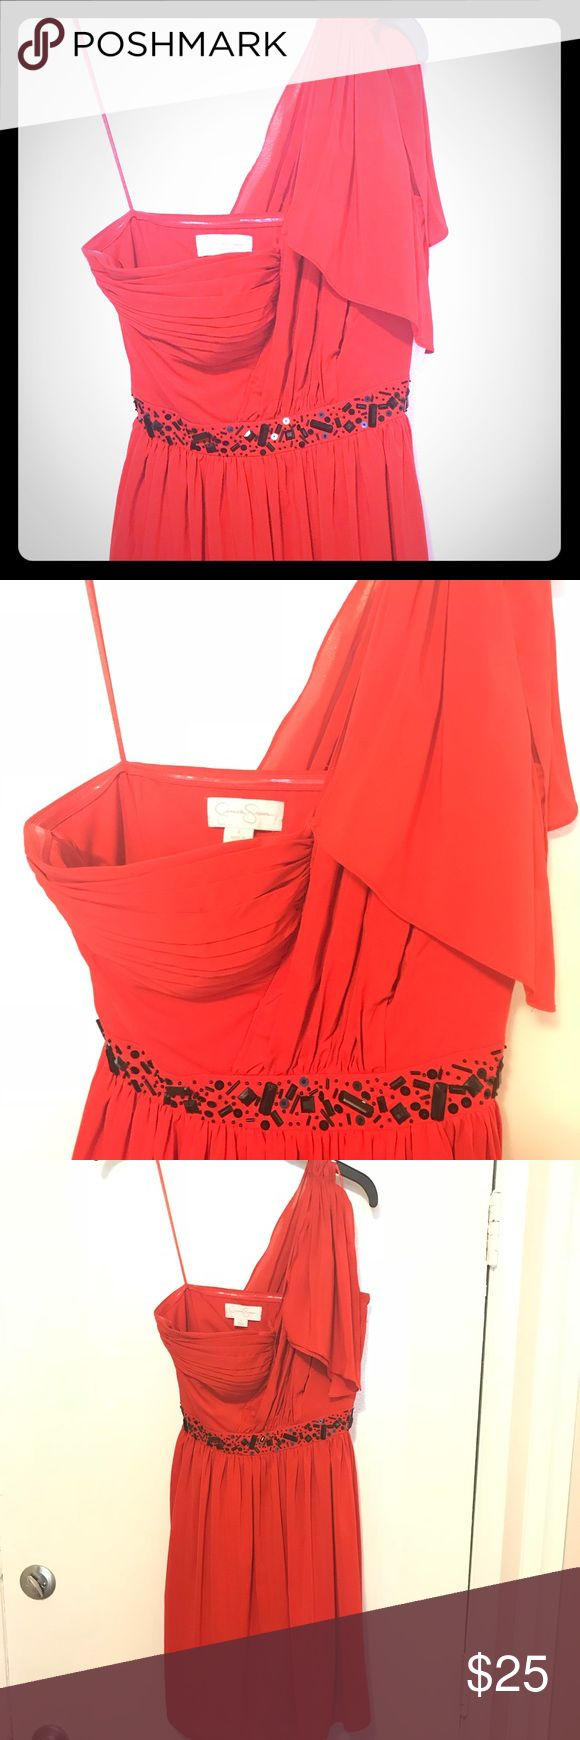 JESSICA SIMPSON Red One Shoulder Mini Dress Fun, flirty, fiery dress ready for a party! | Pristine condition | Dry clean only | 96% poly, 4% spandex Jessica Simpson Dresses One Shoulder